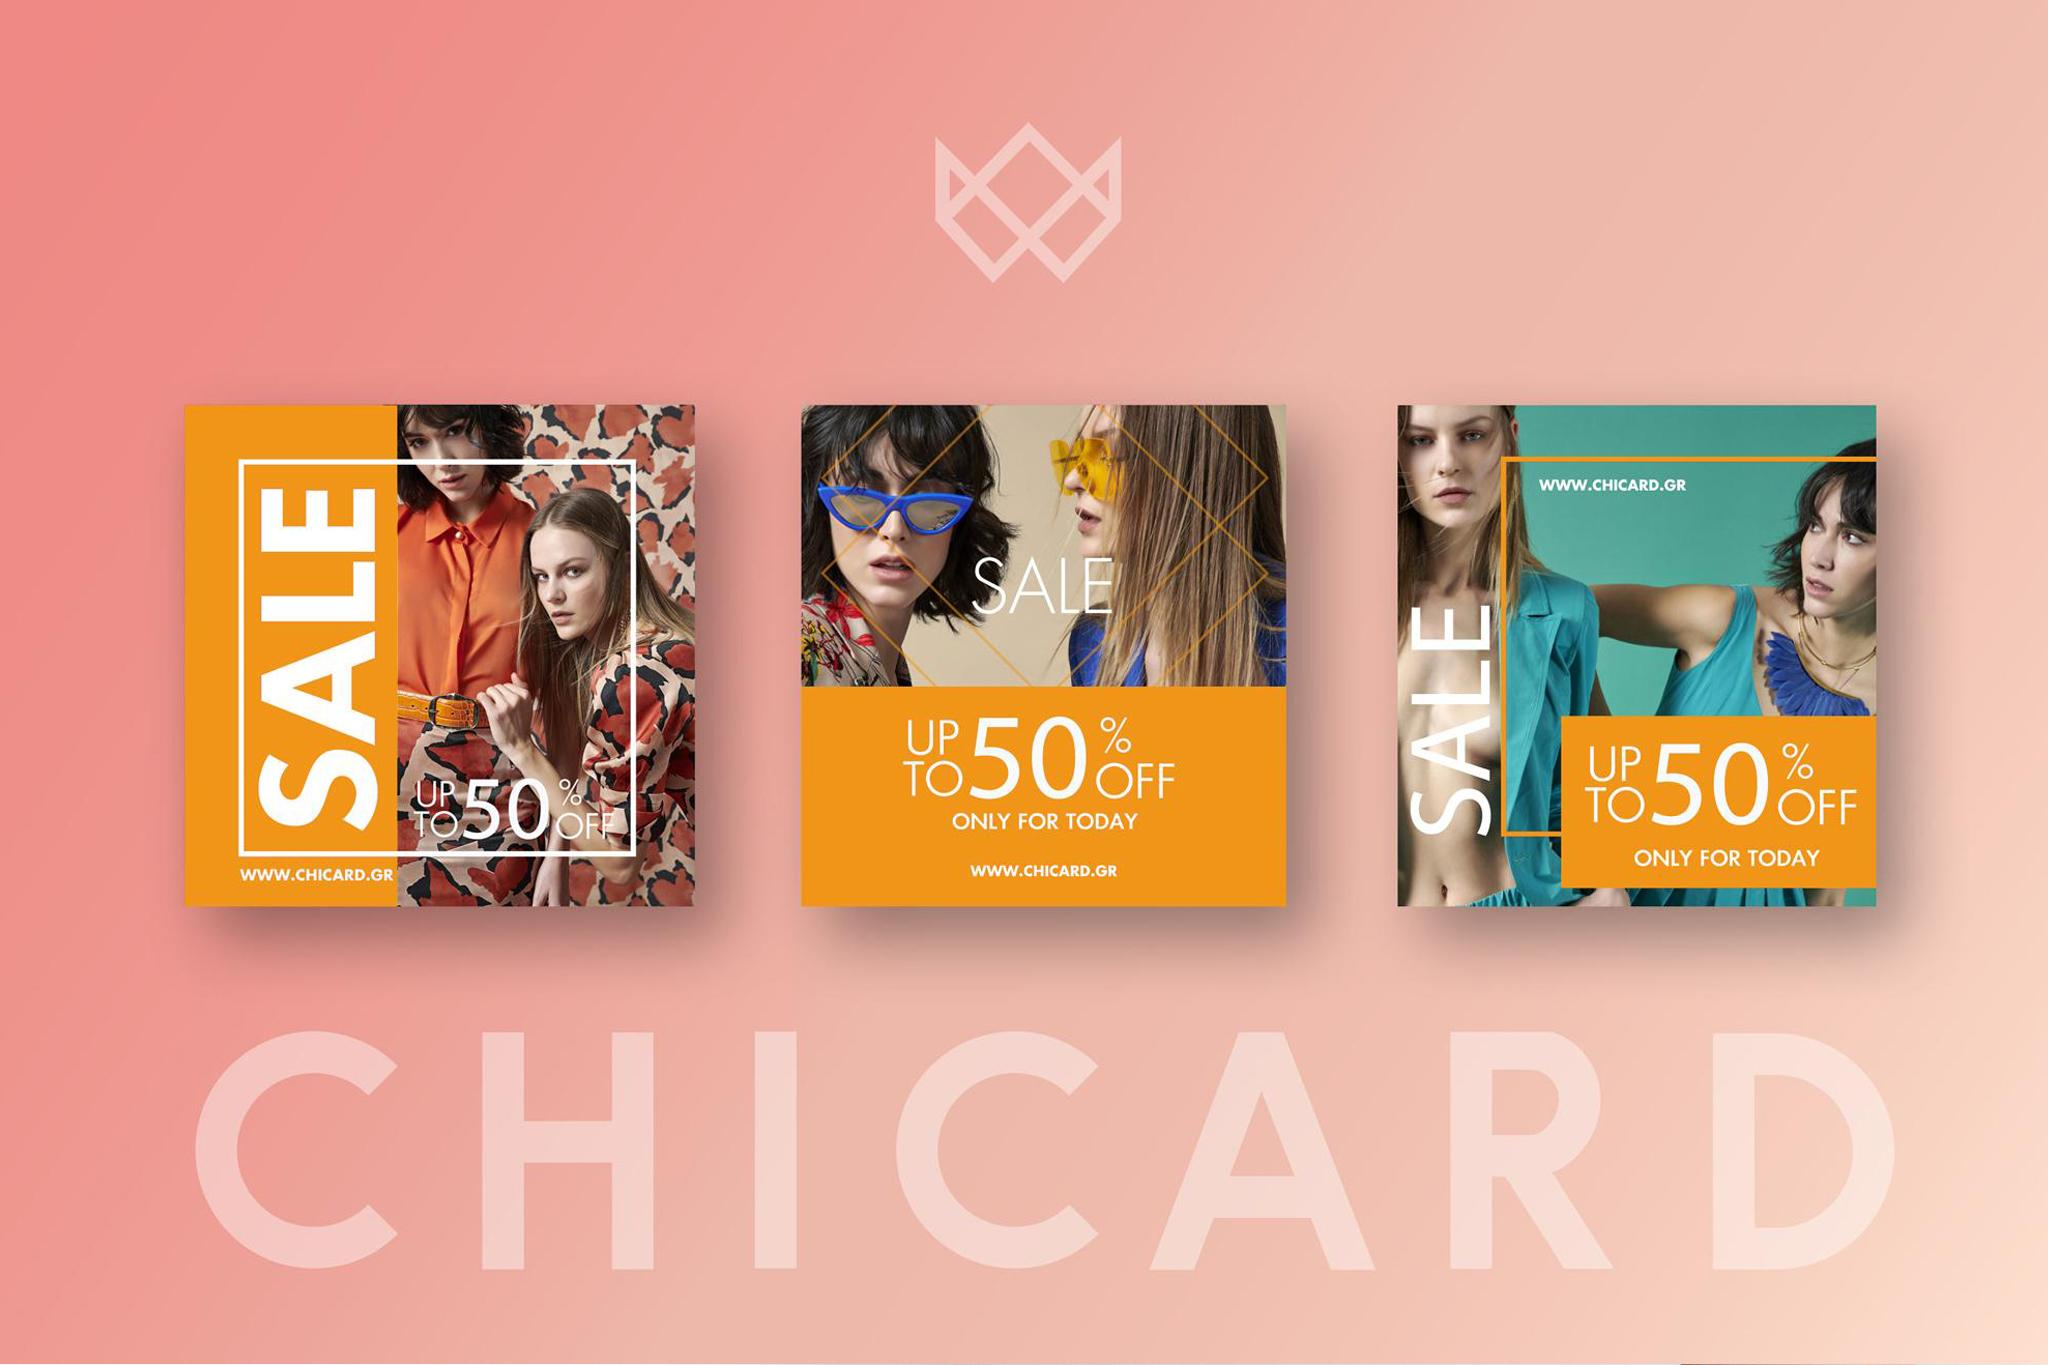 Chicard wome's fashion social media graphics